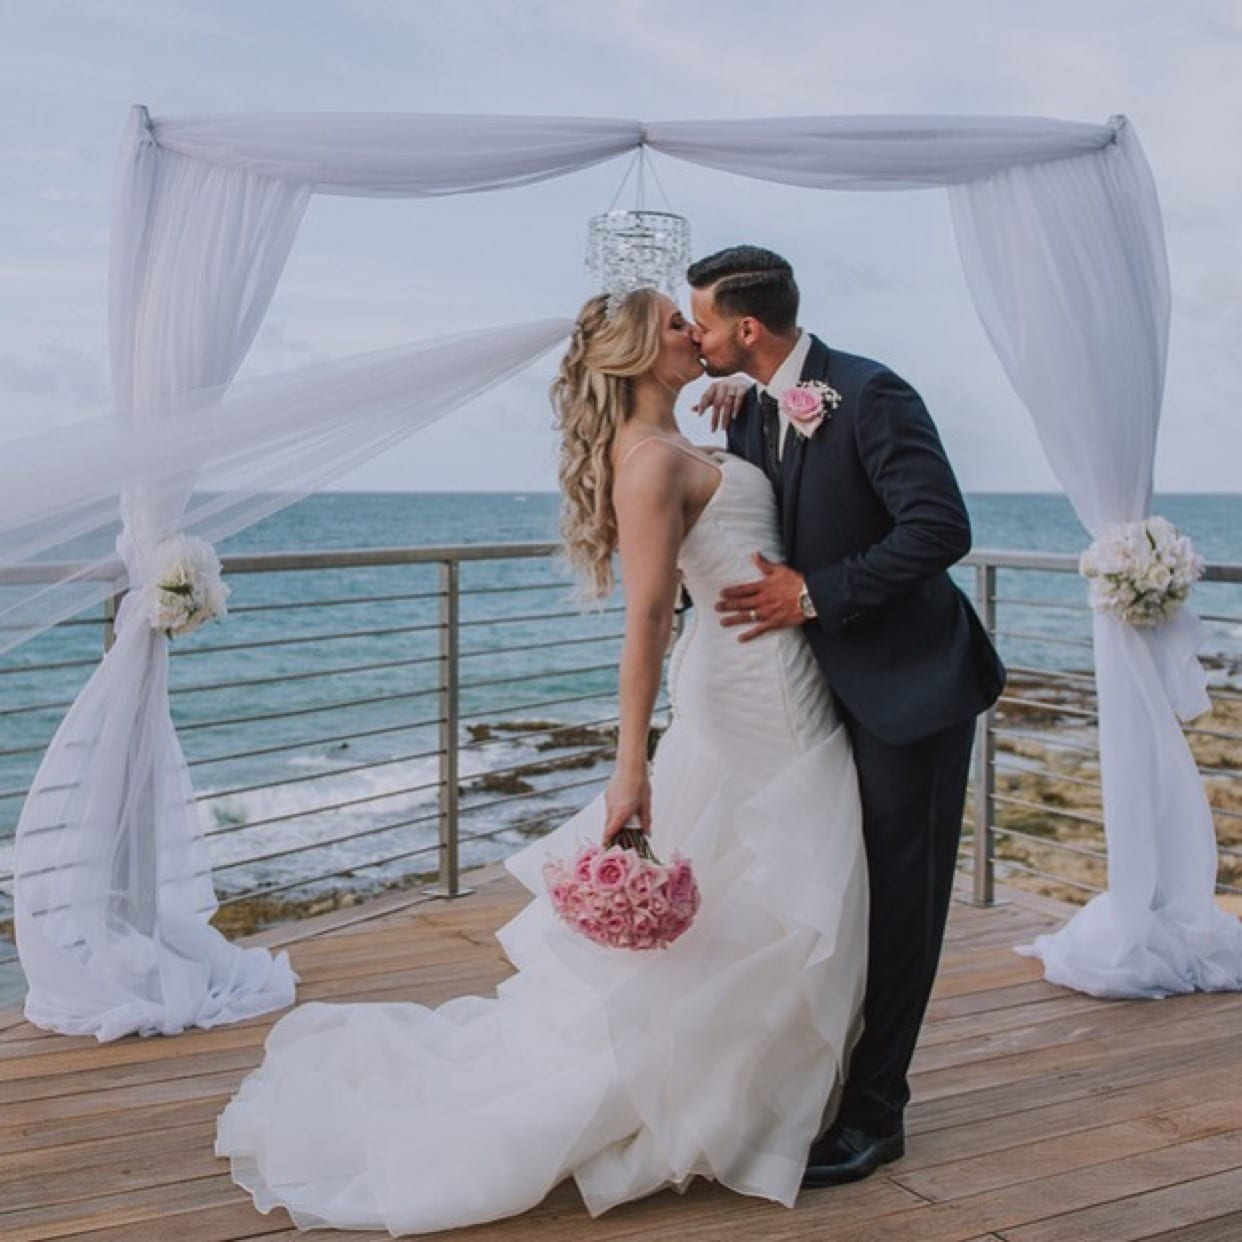 A just married couple at an outdoor wedding venue at Condado Ocean Club